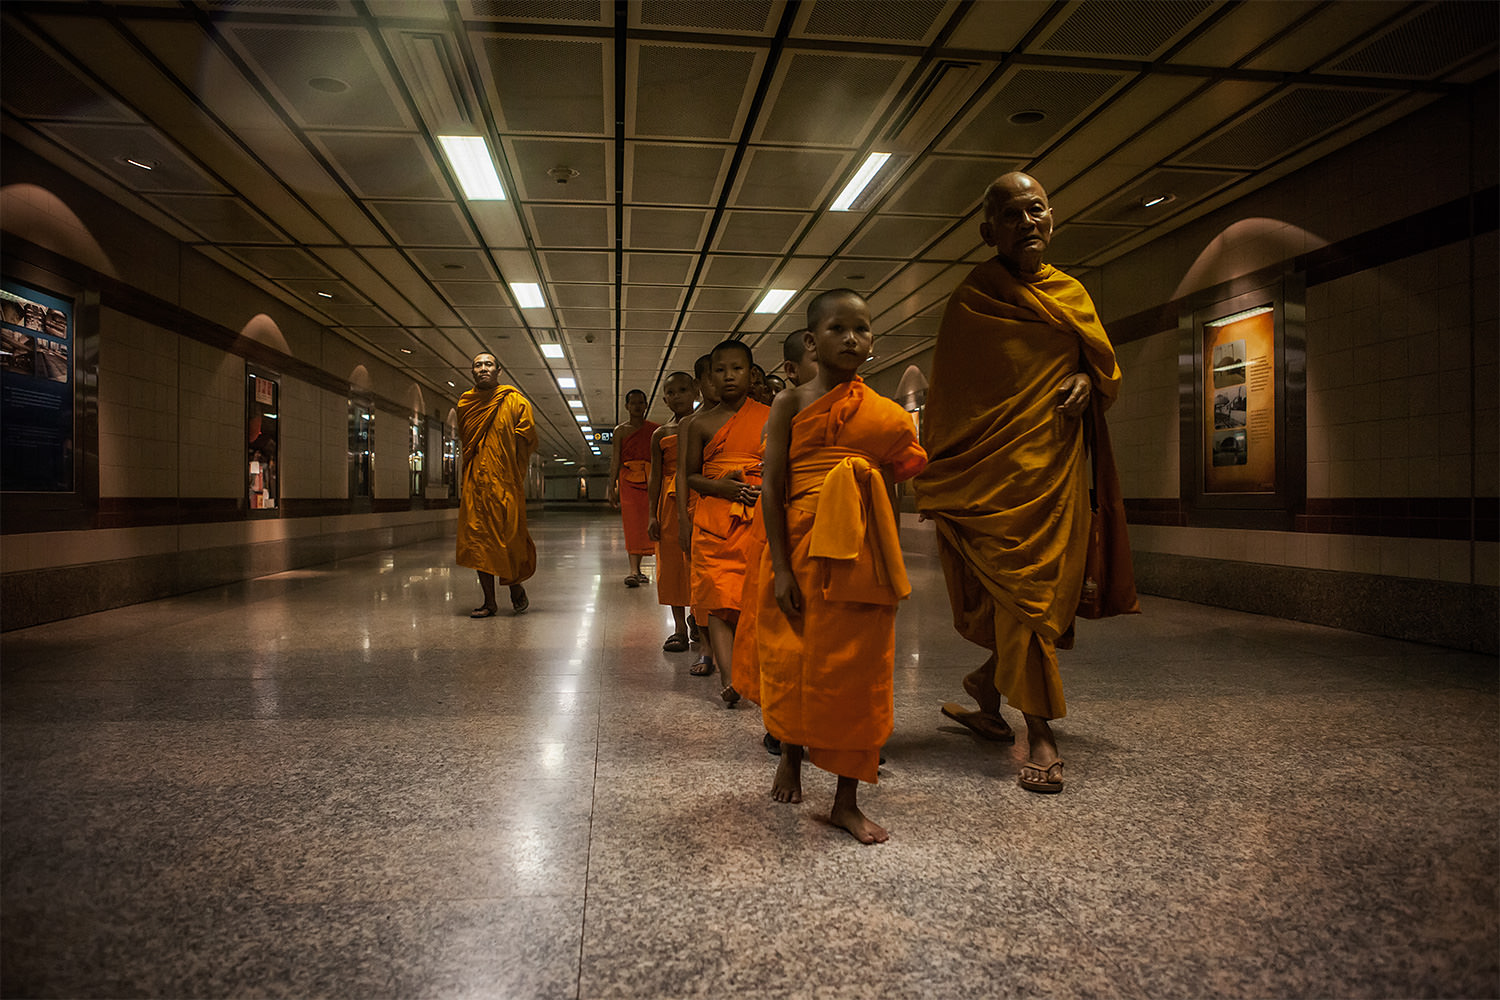 Monks in the Bangkok subway. Thailand